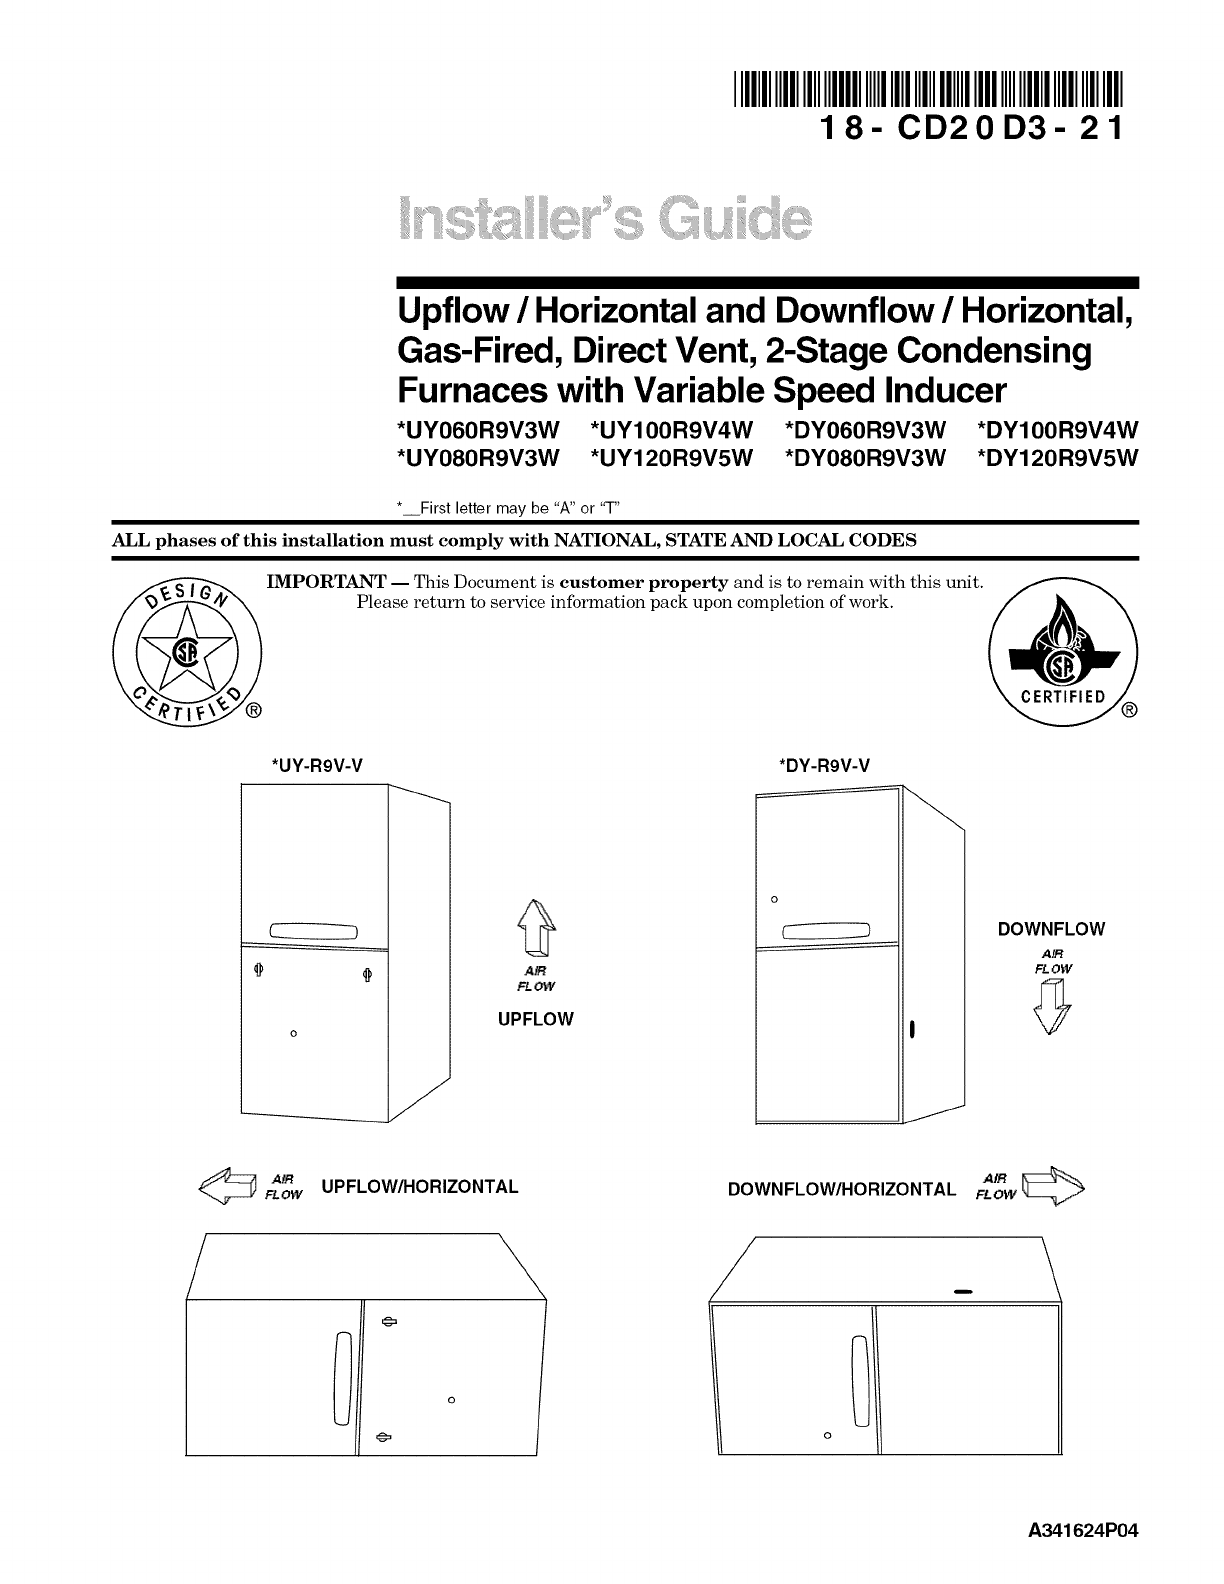 hight resolution of a ground joint union and a manual gas shutoff valve should be installed ahead of the unit heater controls to permit servicing download trane furnace pdf